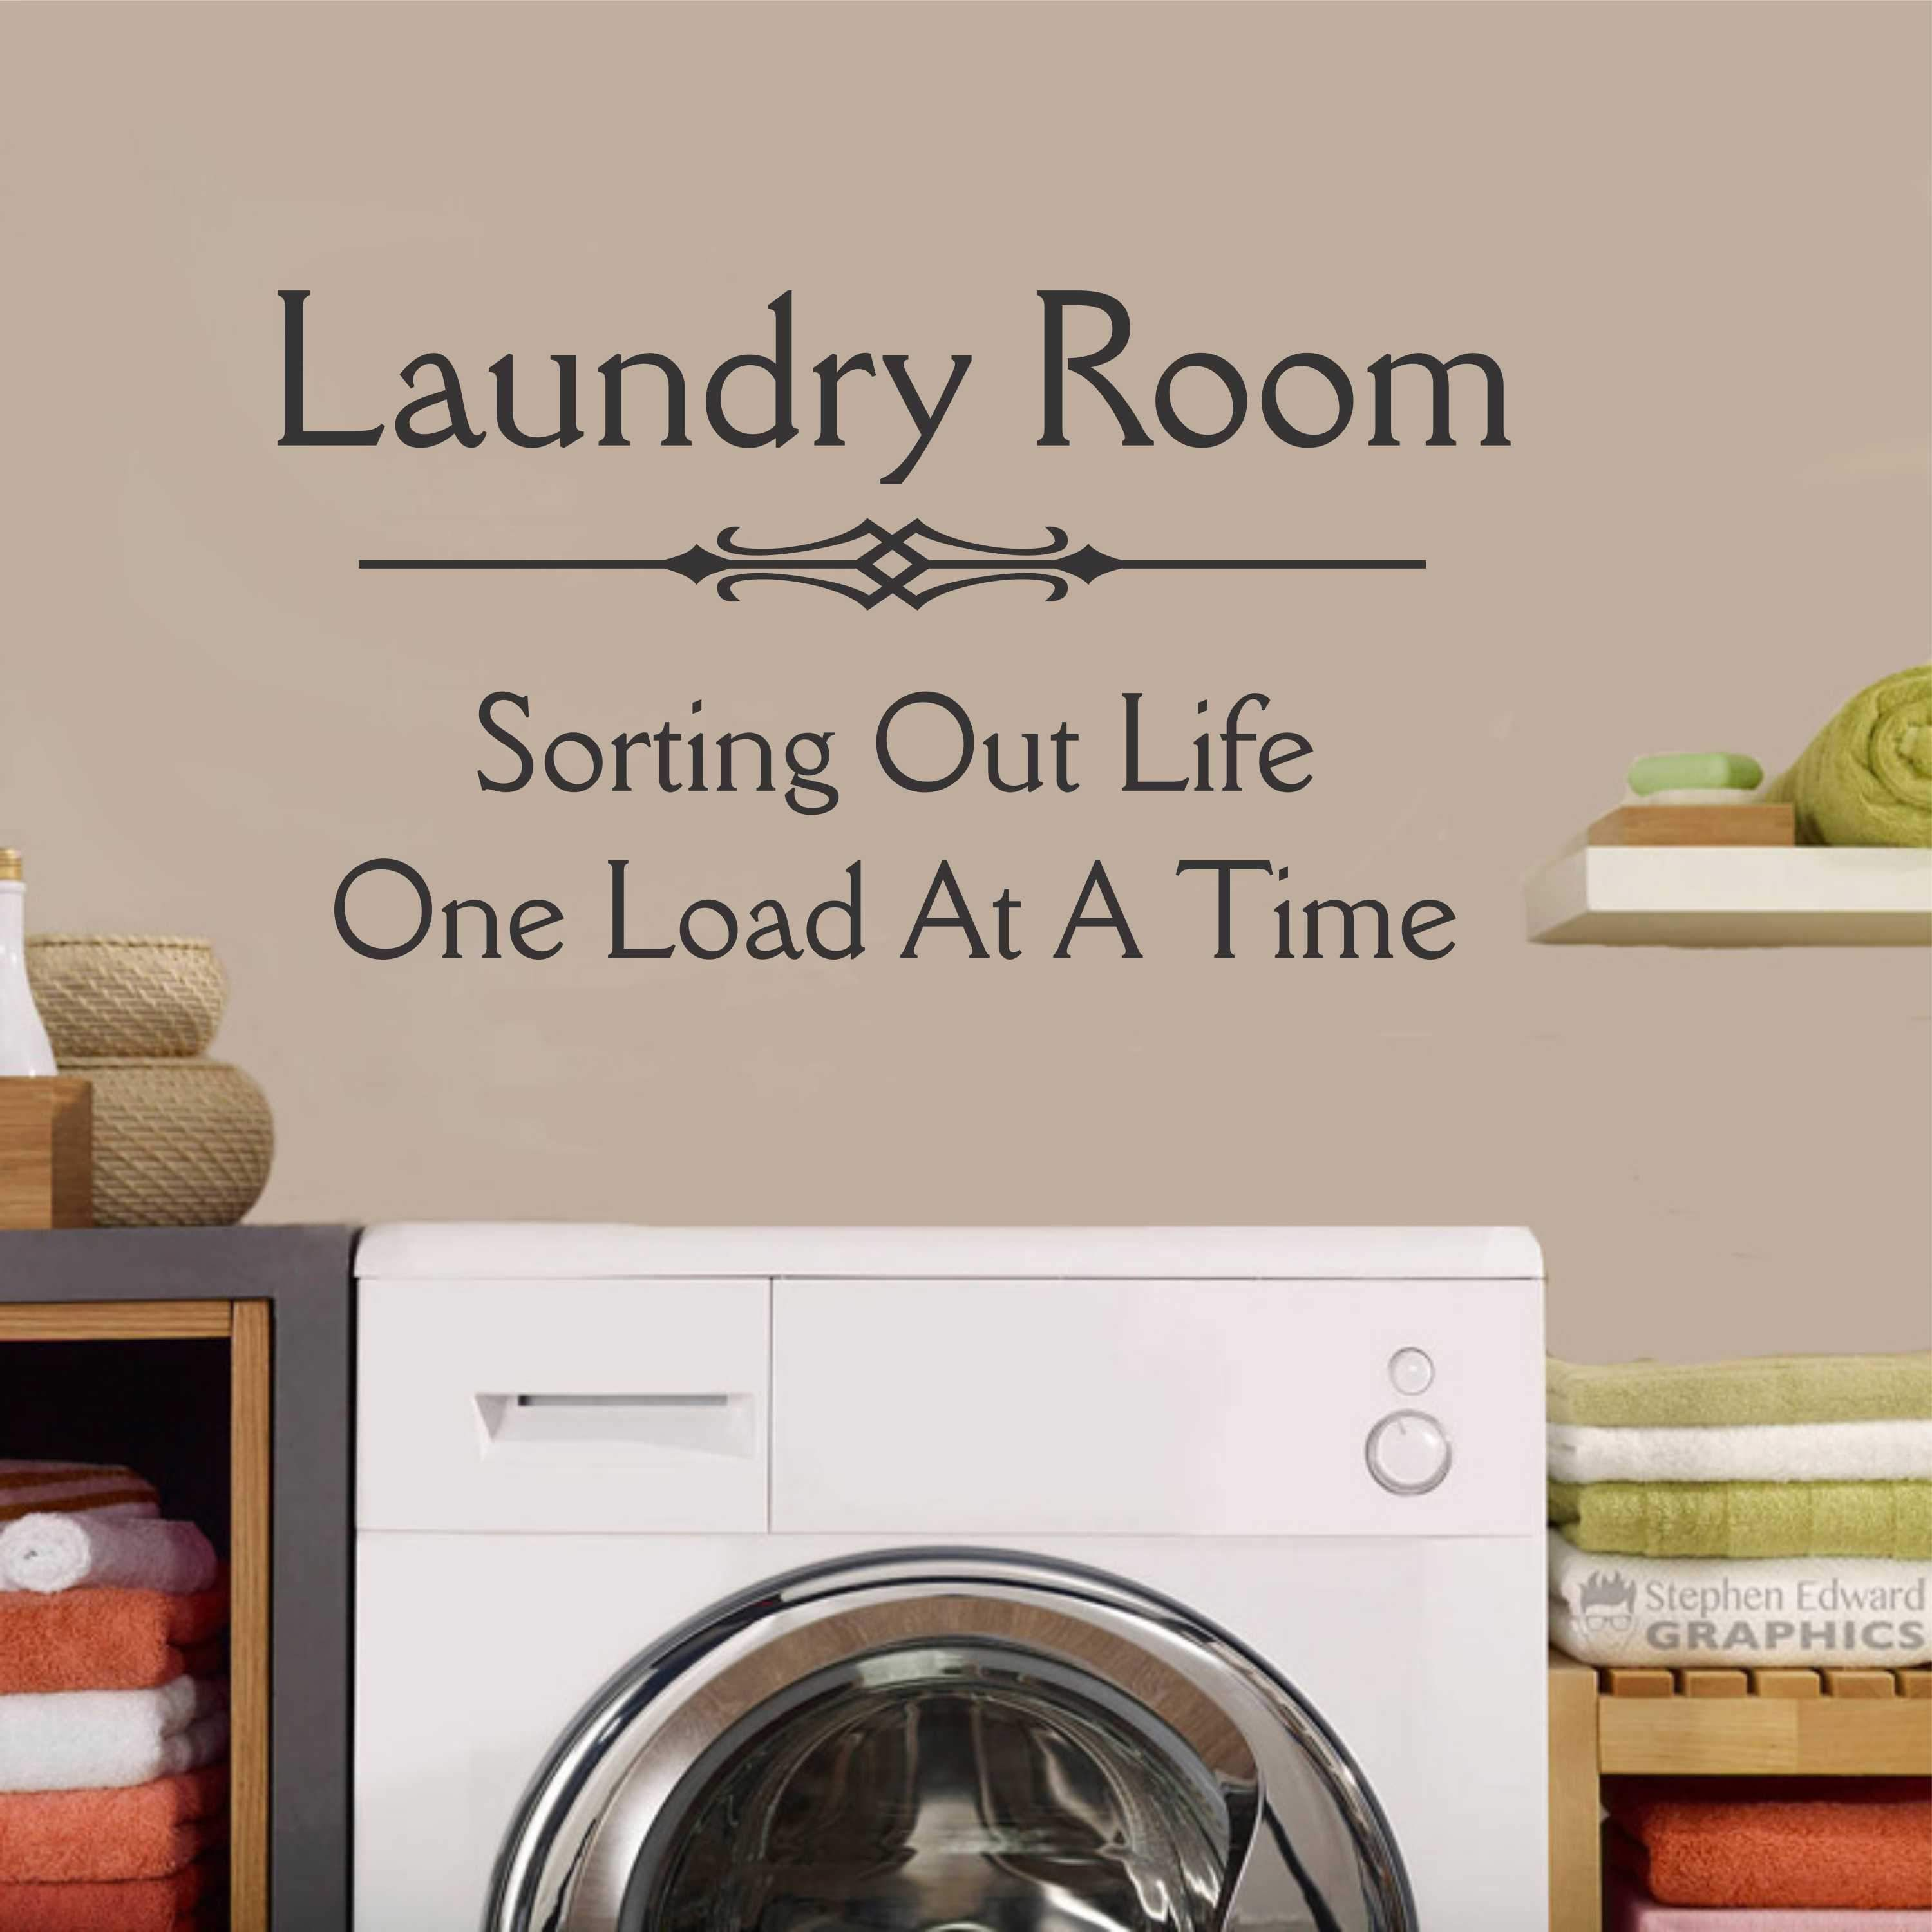 Laundry Room Wall Sayings Laundry Sorting Life Decal  Vinyl Lettering  Wall Quotes  Products